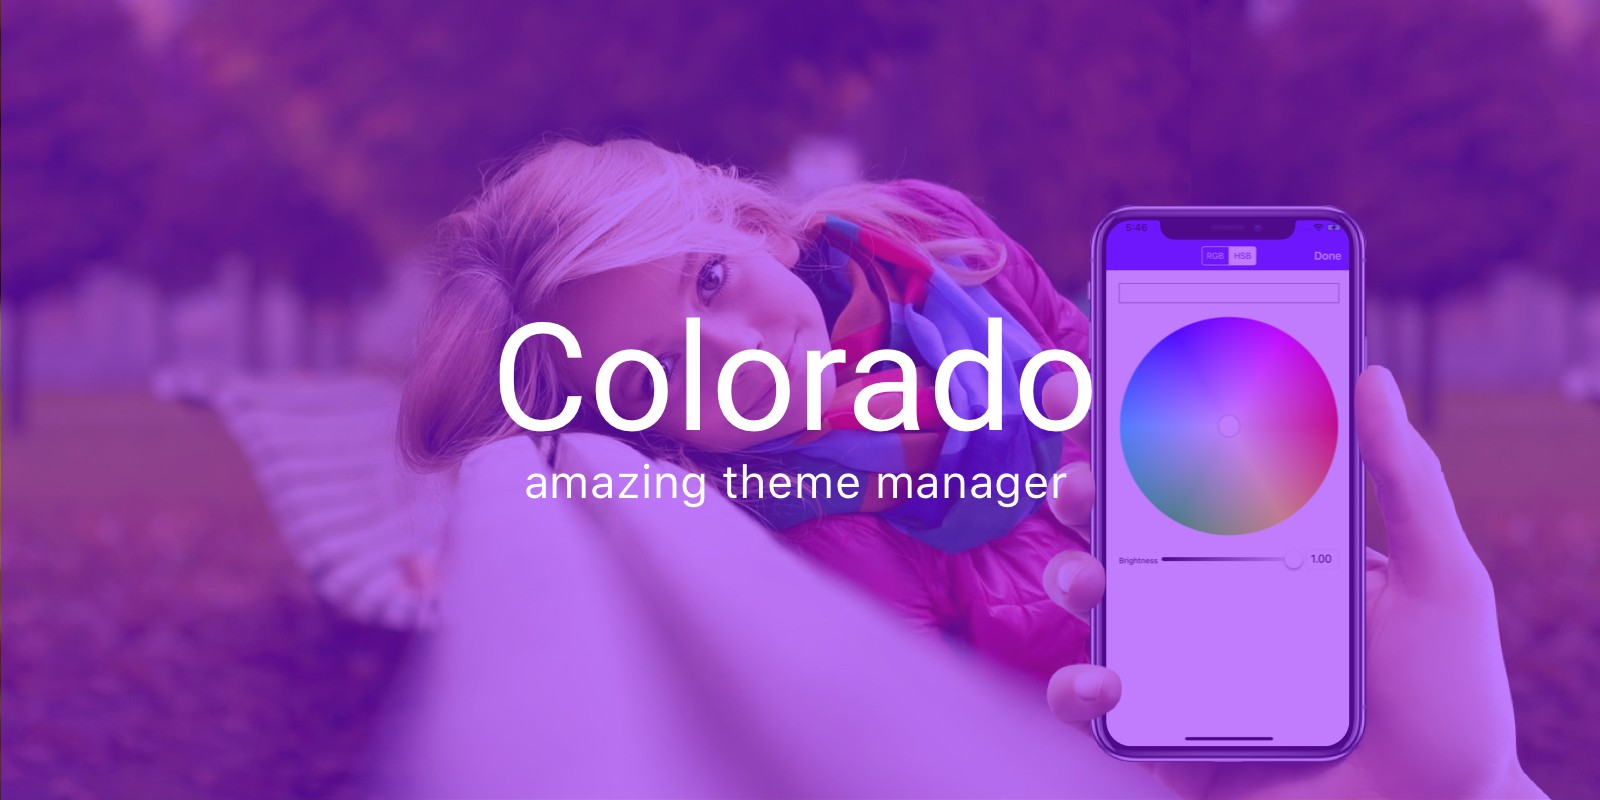 Colorado - Theme Manager iOS Source Code